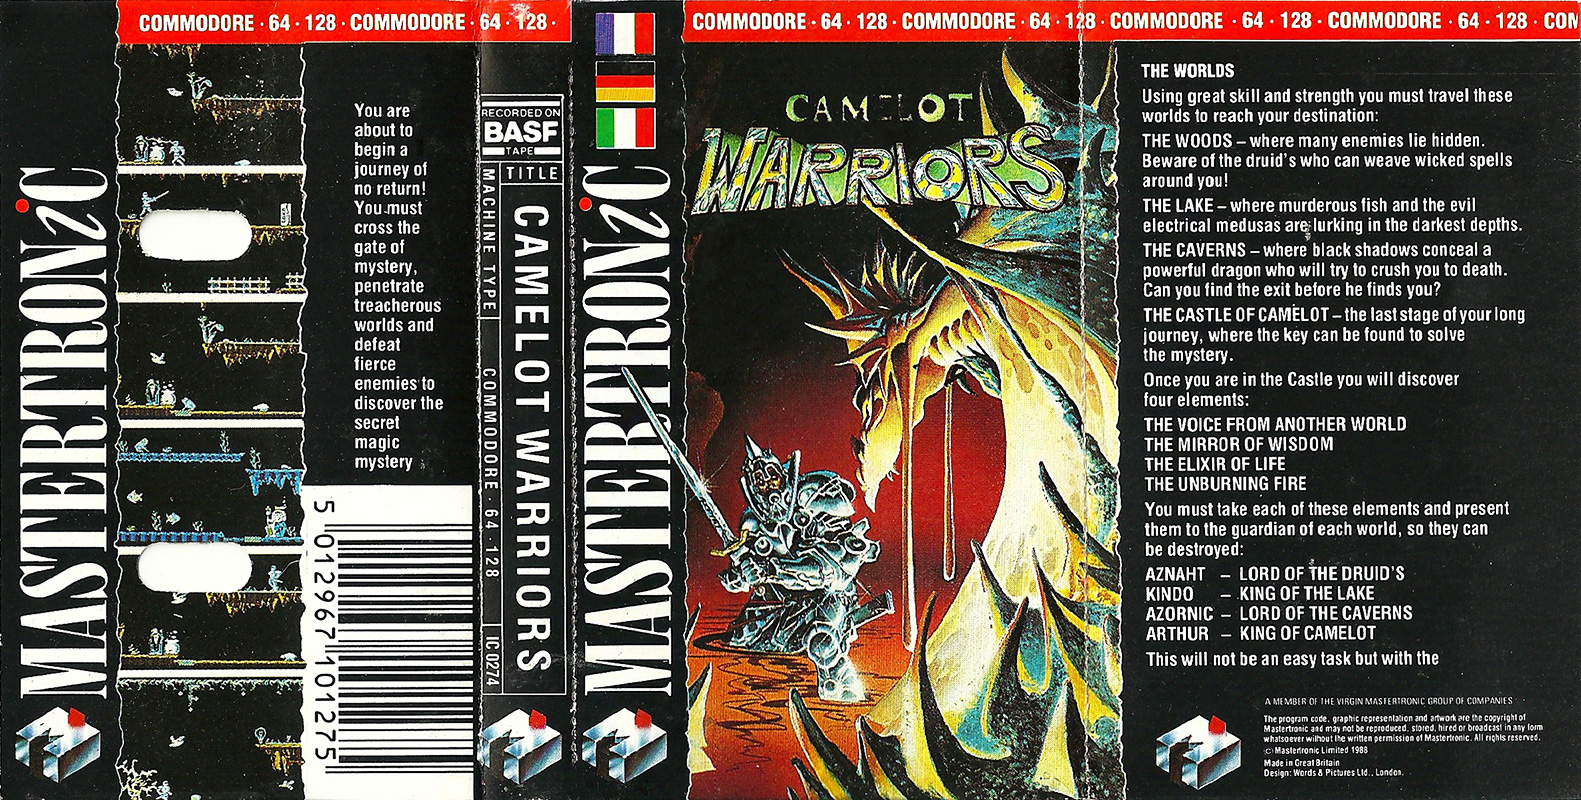 commodore-c64-camelot-warriors.jpg